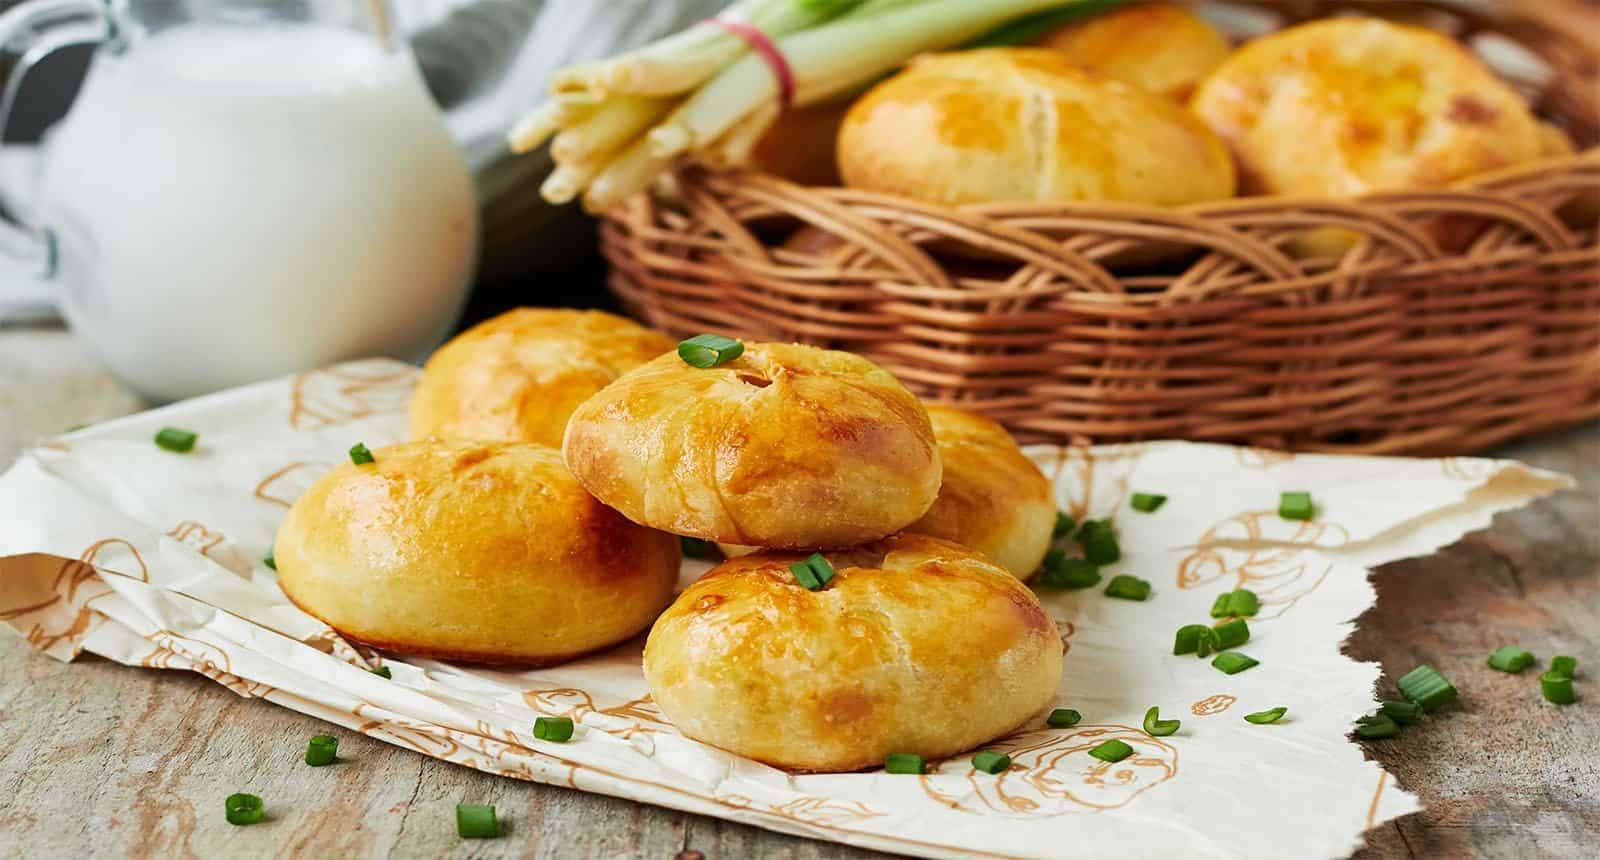 Baked Pasties Potatoes Onions